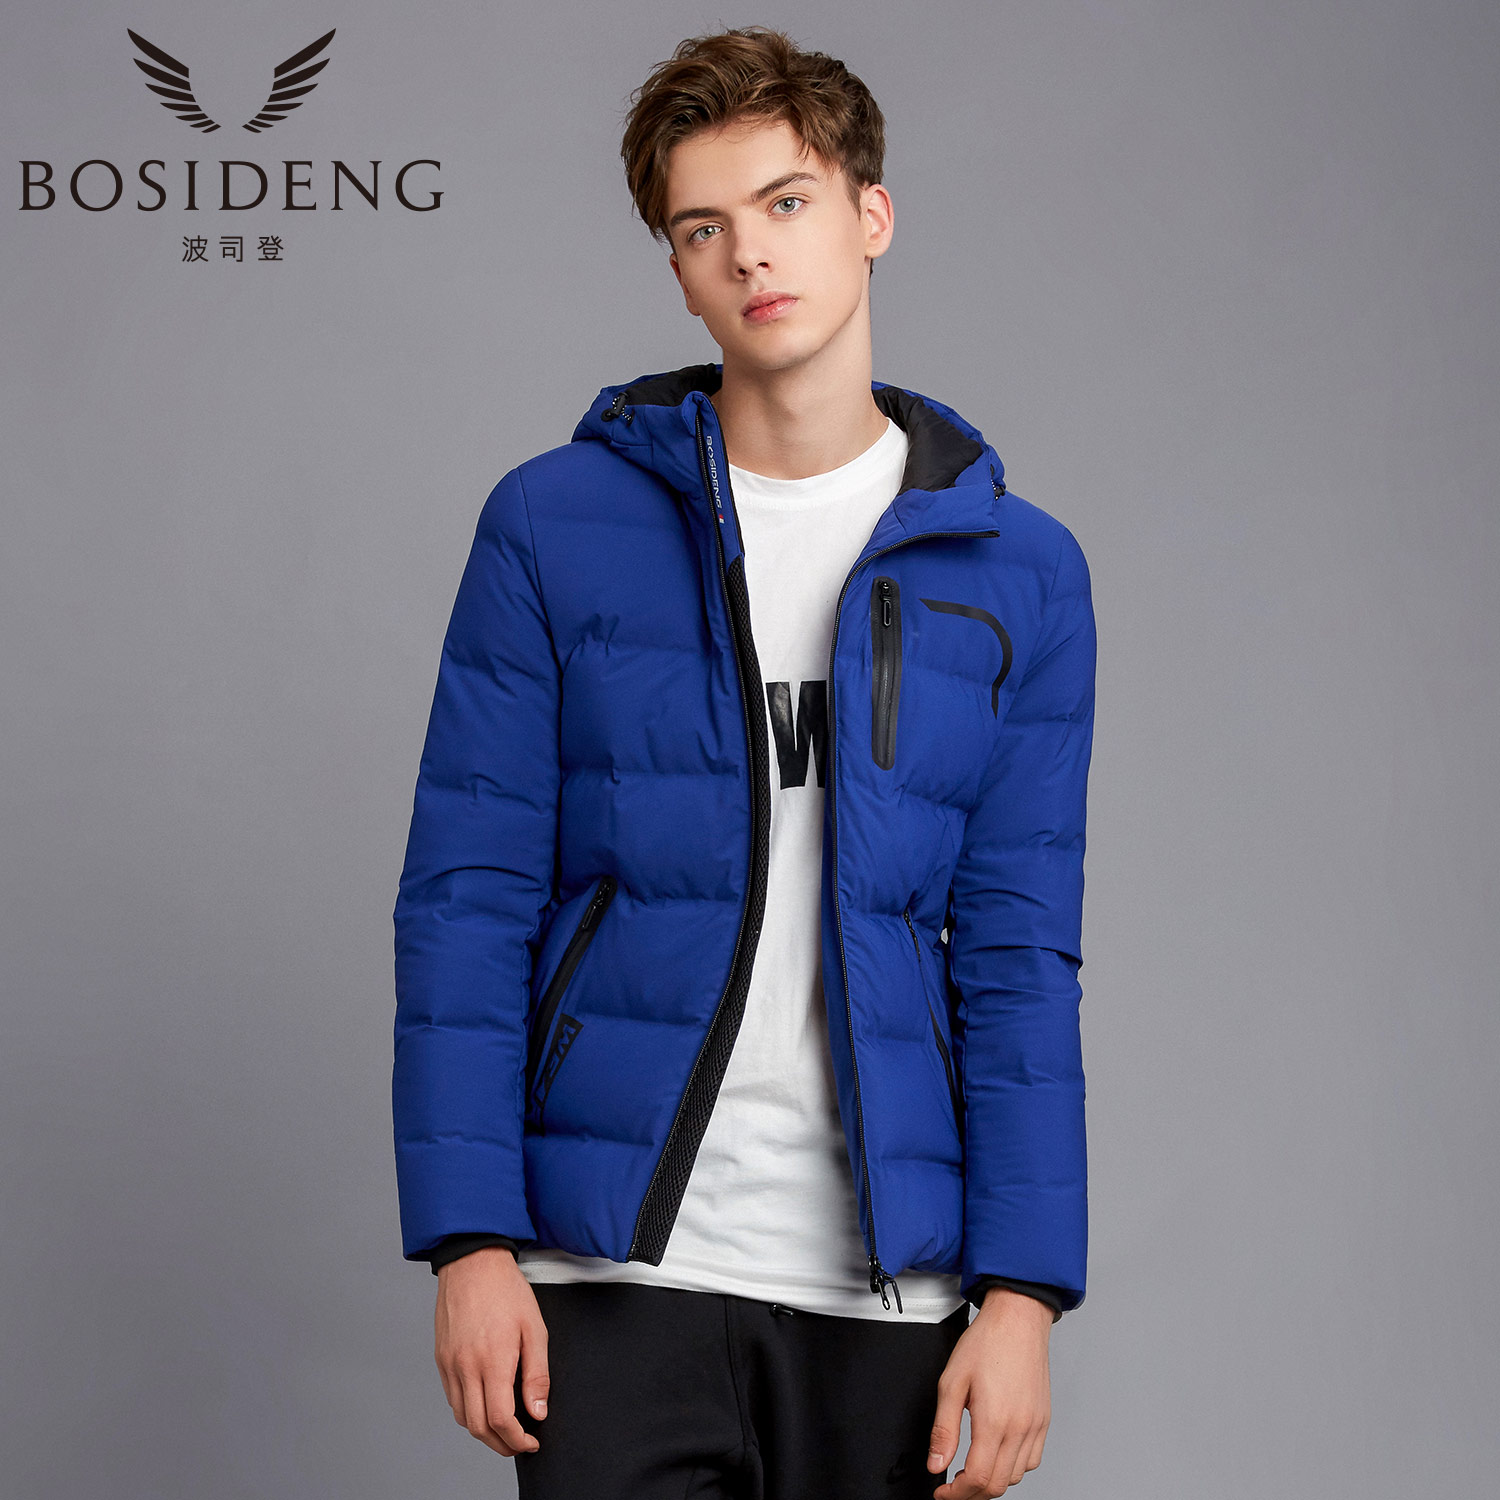 Bosideng men's jacket slim students purchasing male short warm thick cap B1601145 ChaoLian special offer